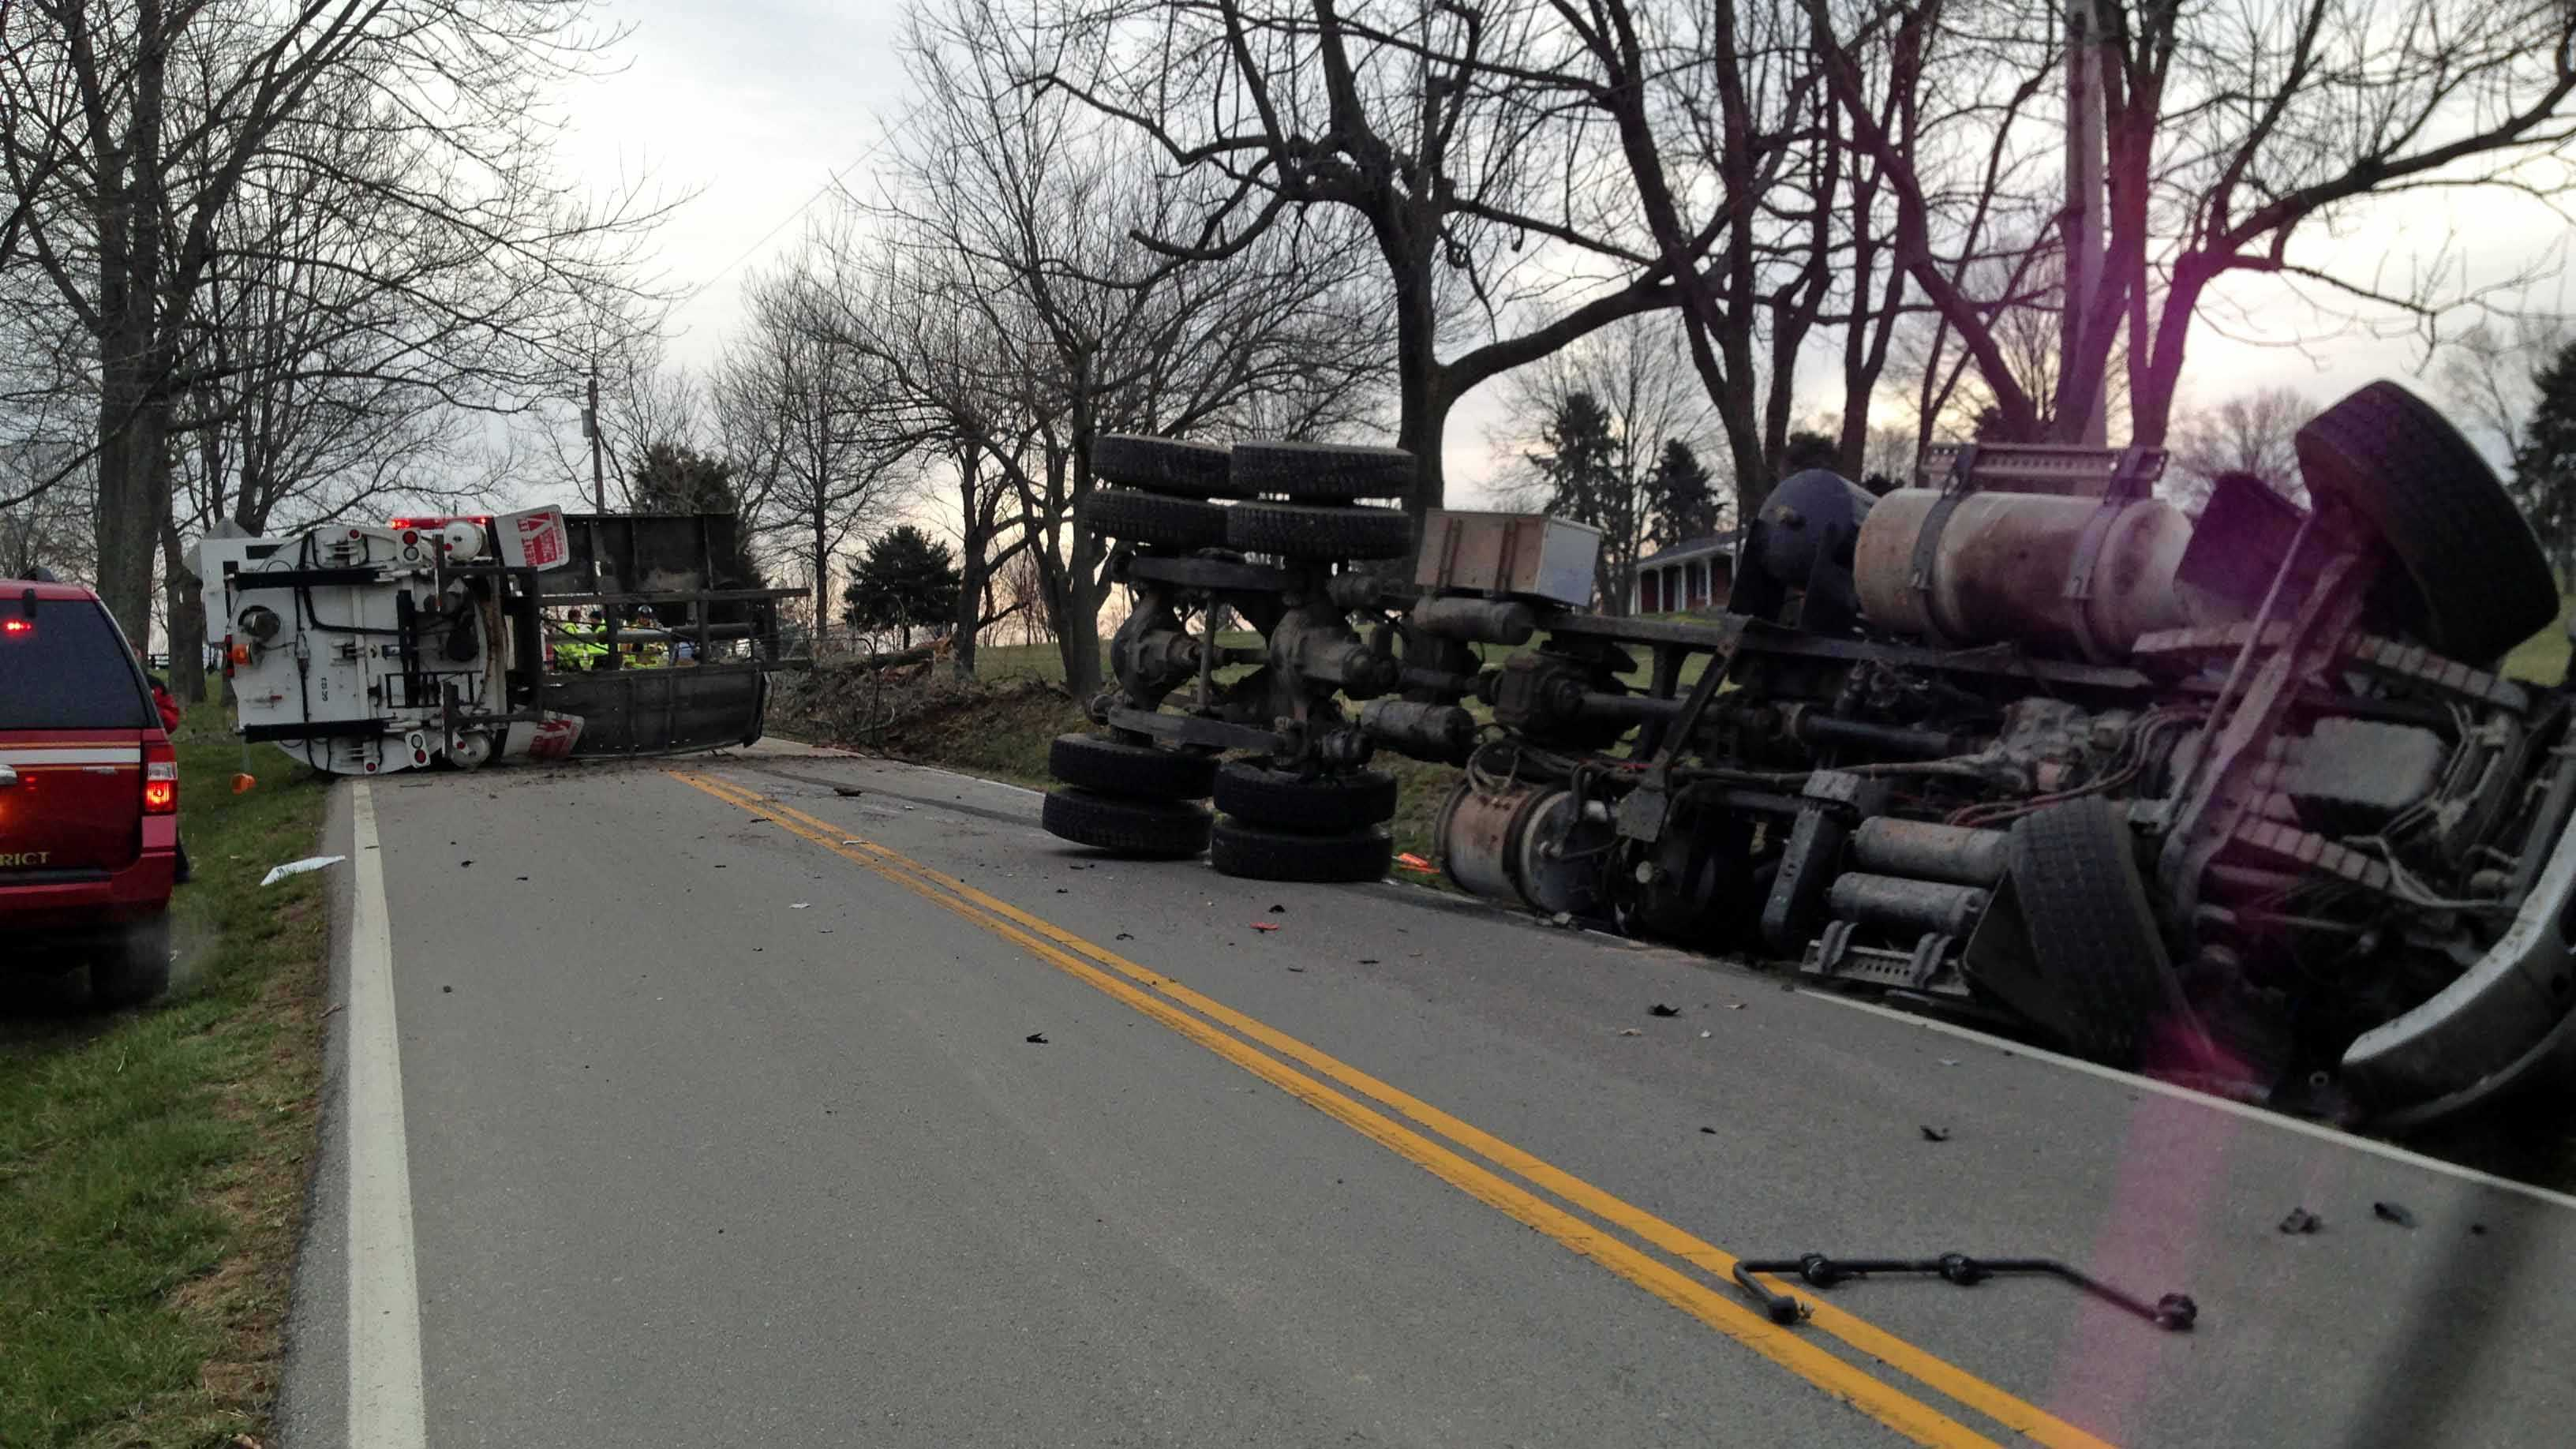 NKY truck crash 130404 (1).jpg